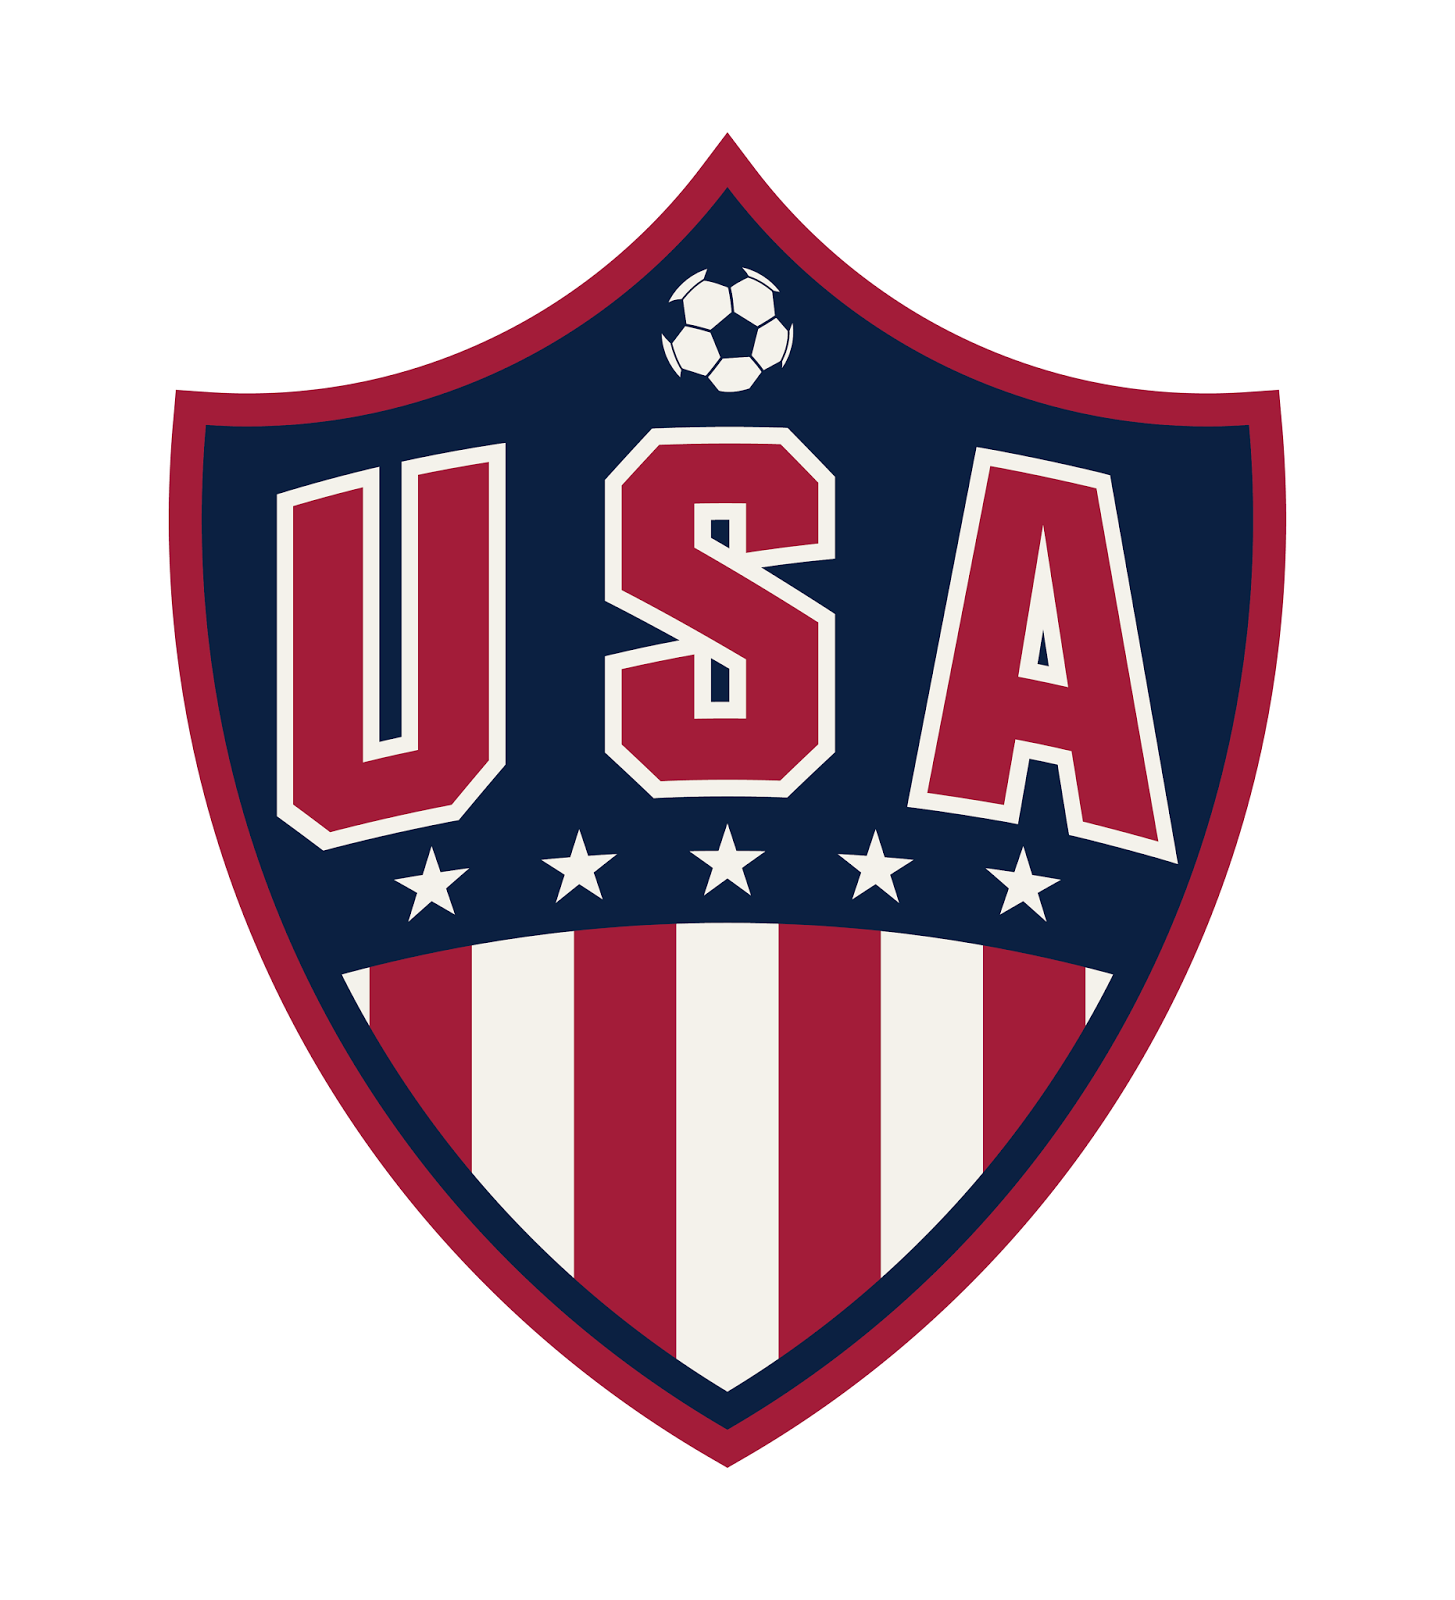 goal line design team usa soccer logo